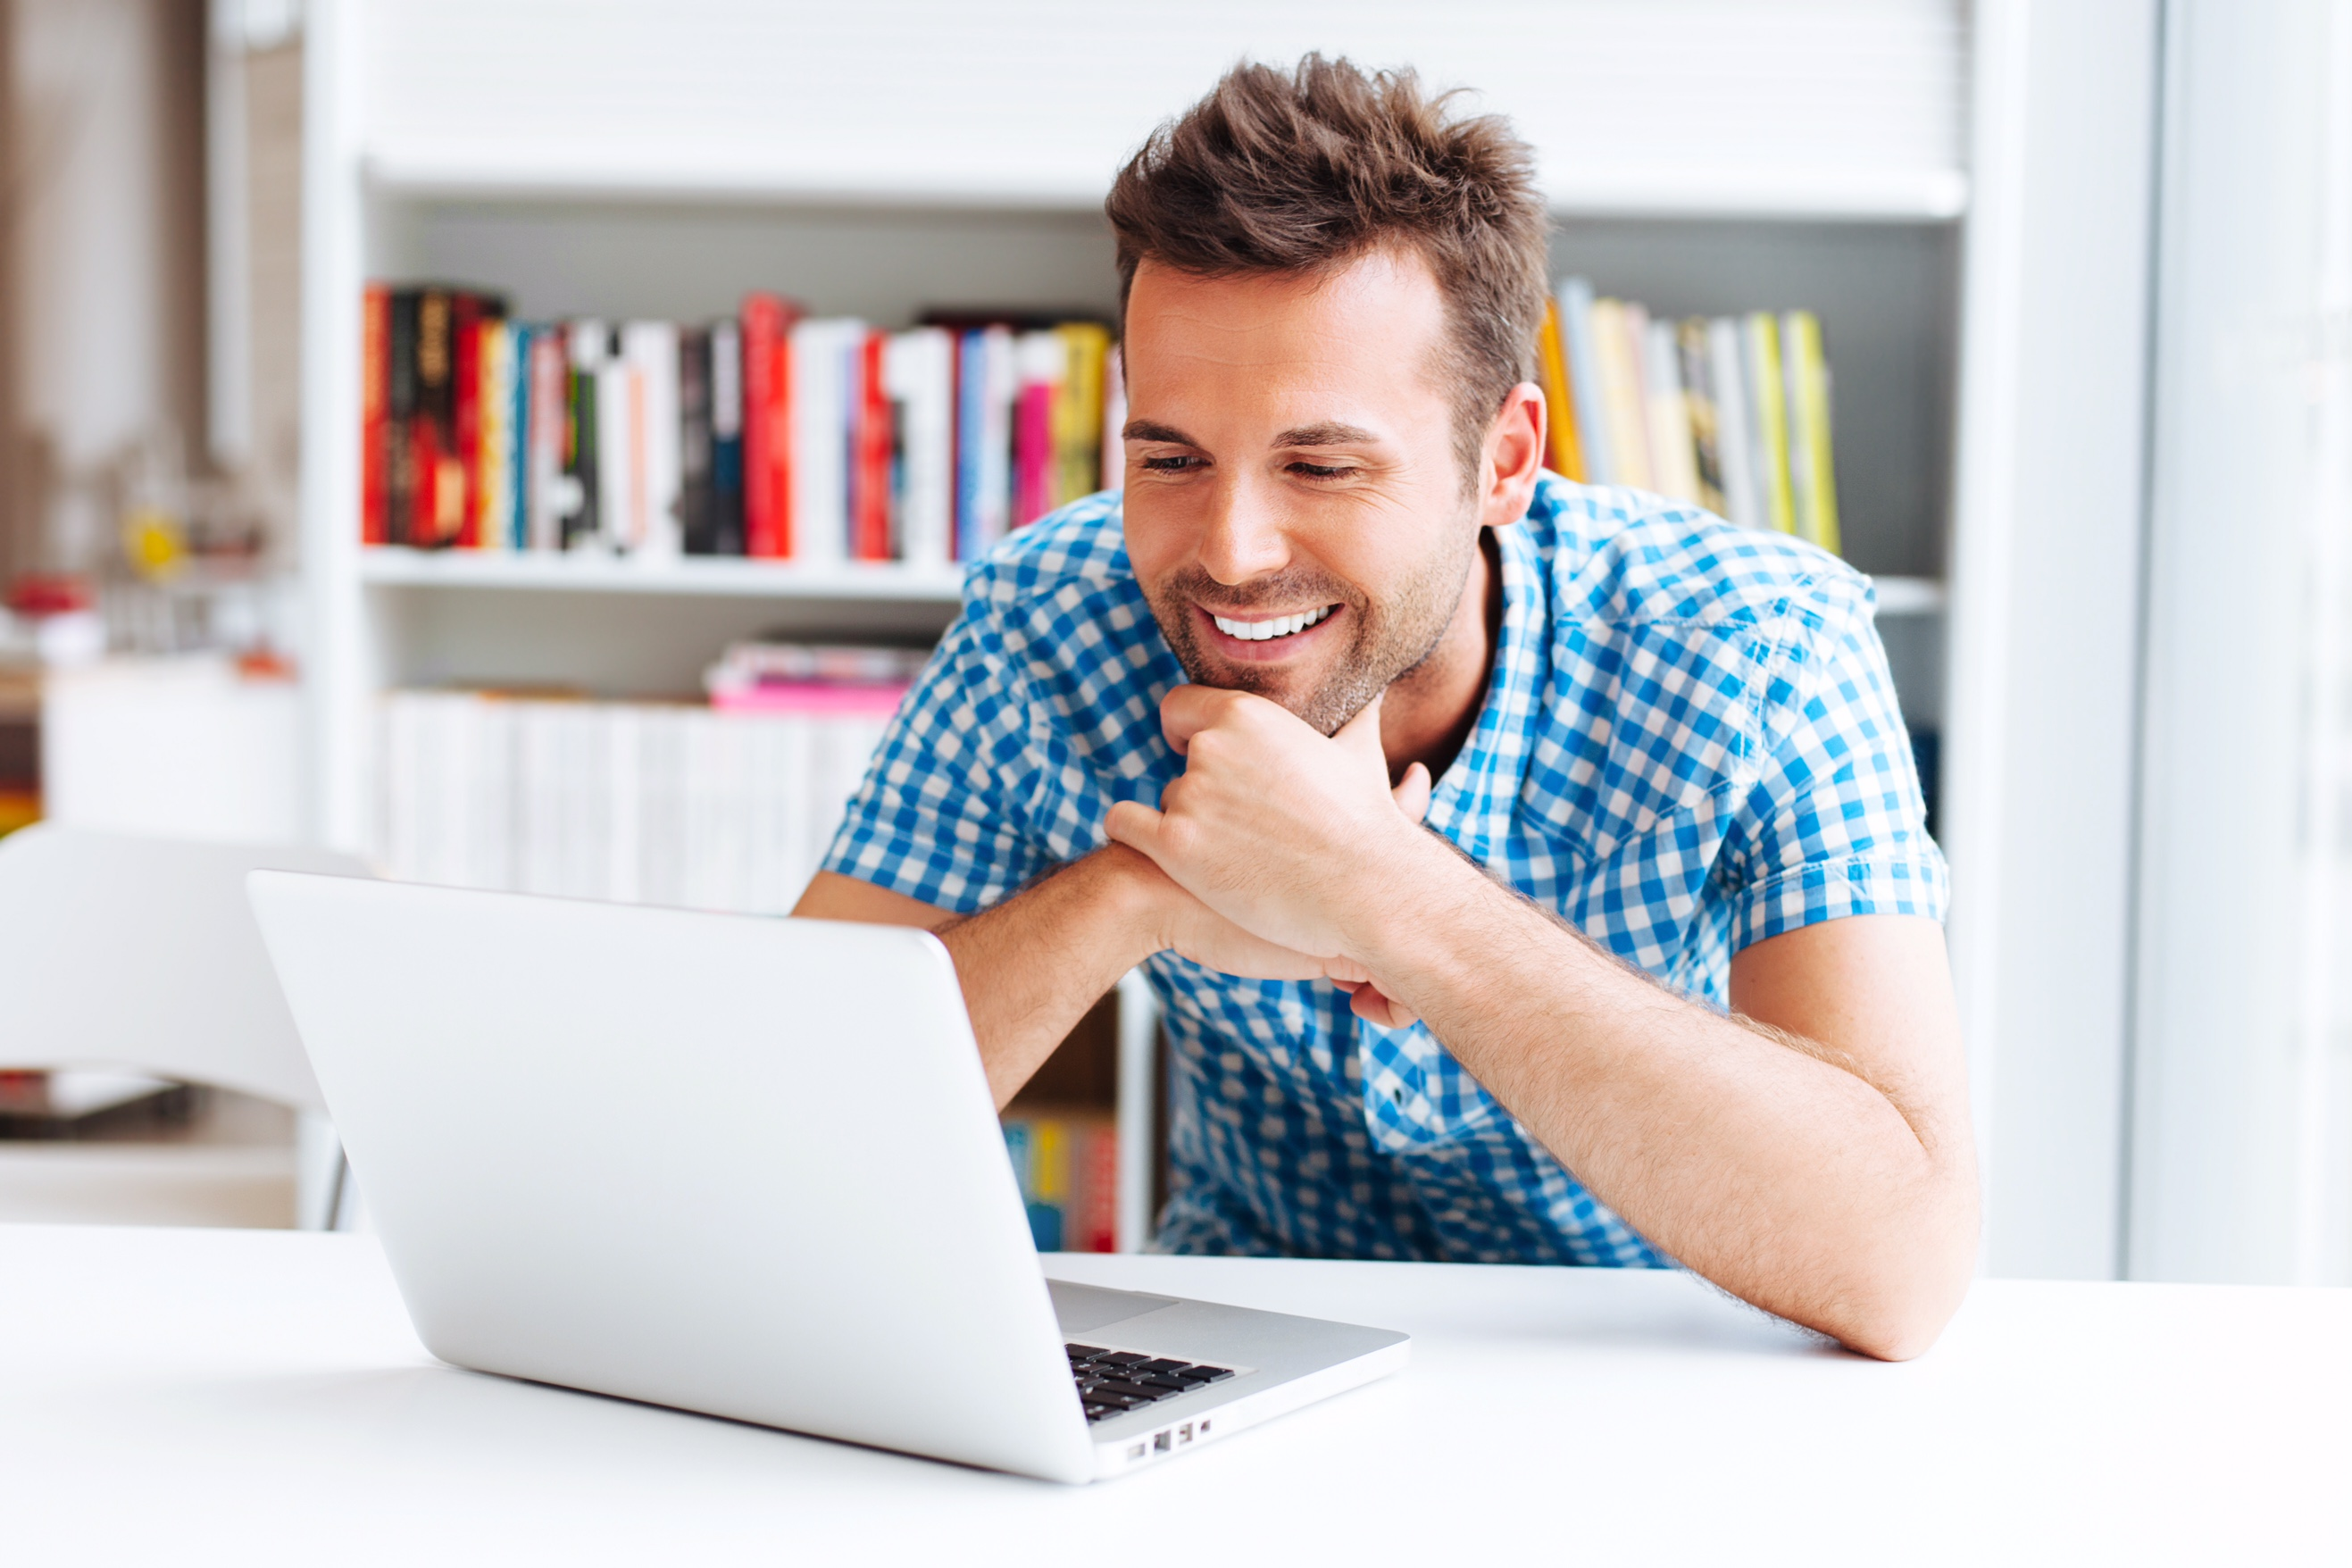 Happy man reading information online